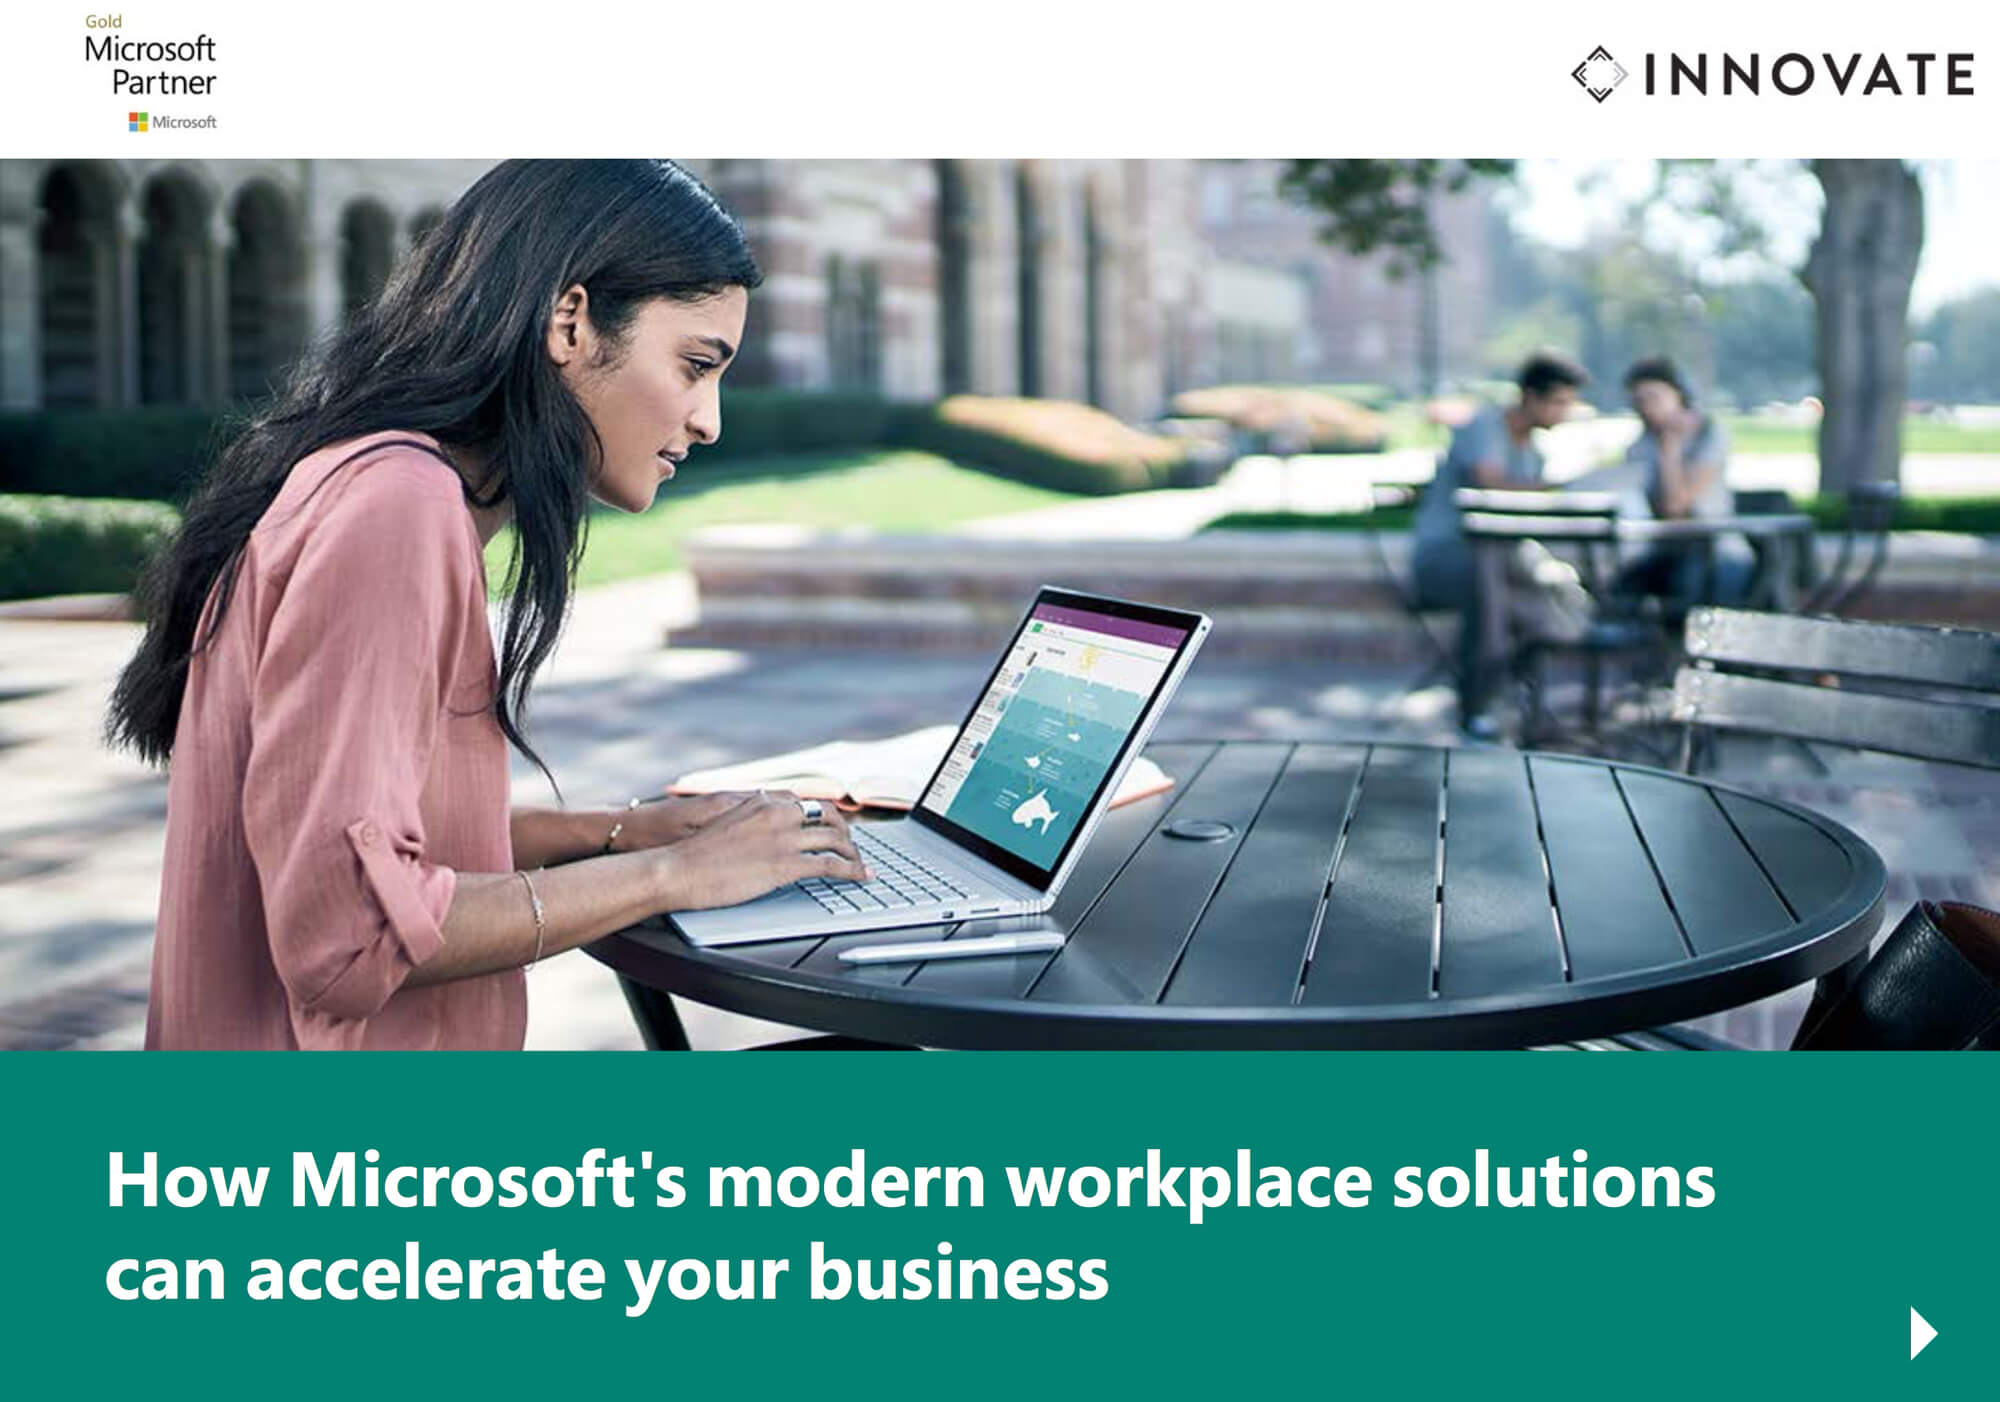 INNOVATE-Microsoft-Modern-Workplace-Solutions-Ebook.jpg